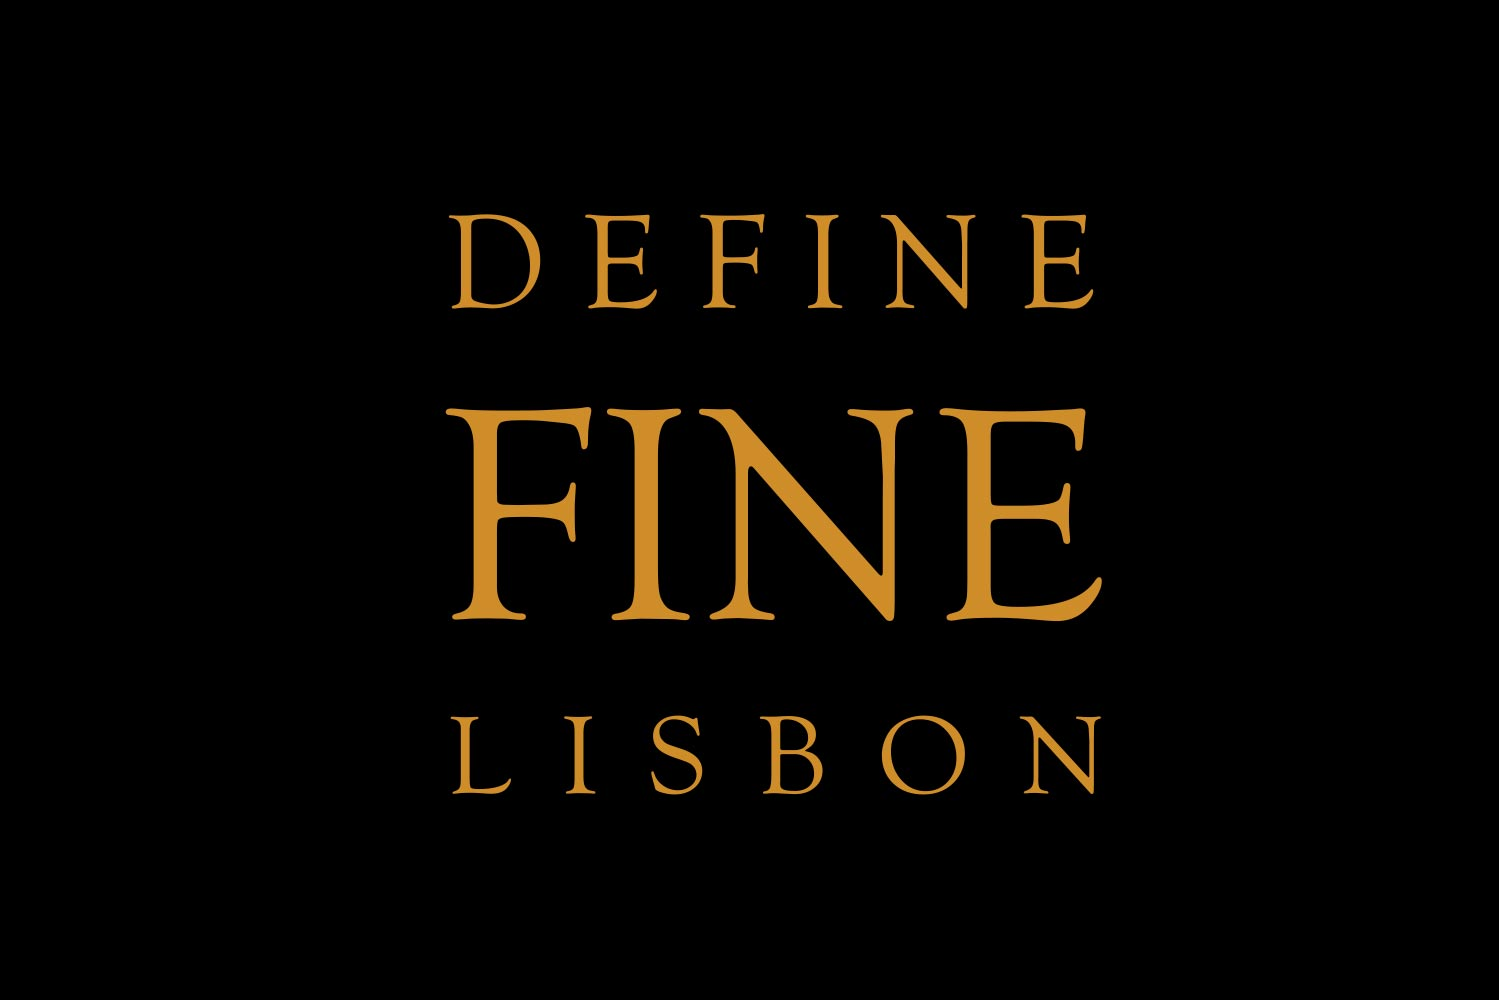 DEFINE FINE LISBON TRAVEL GUIDE